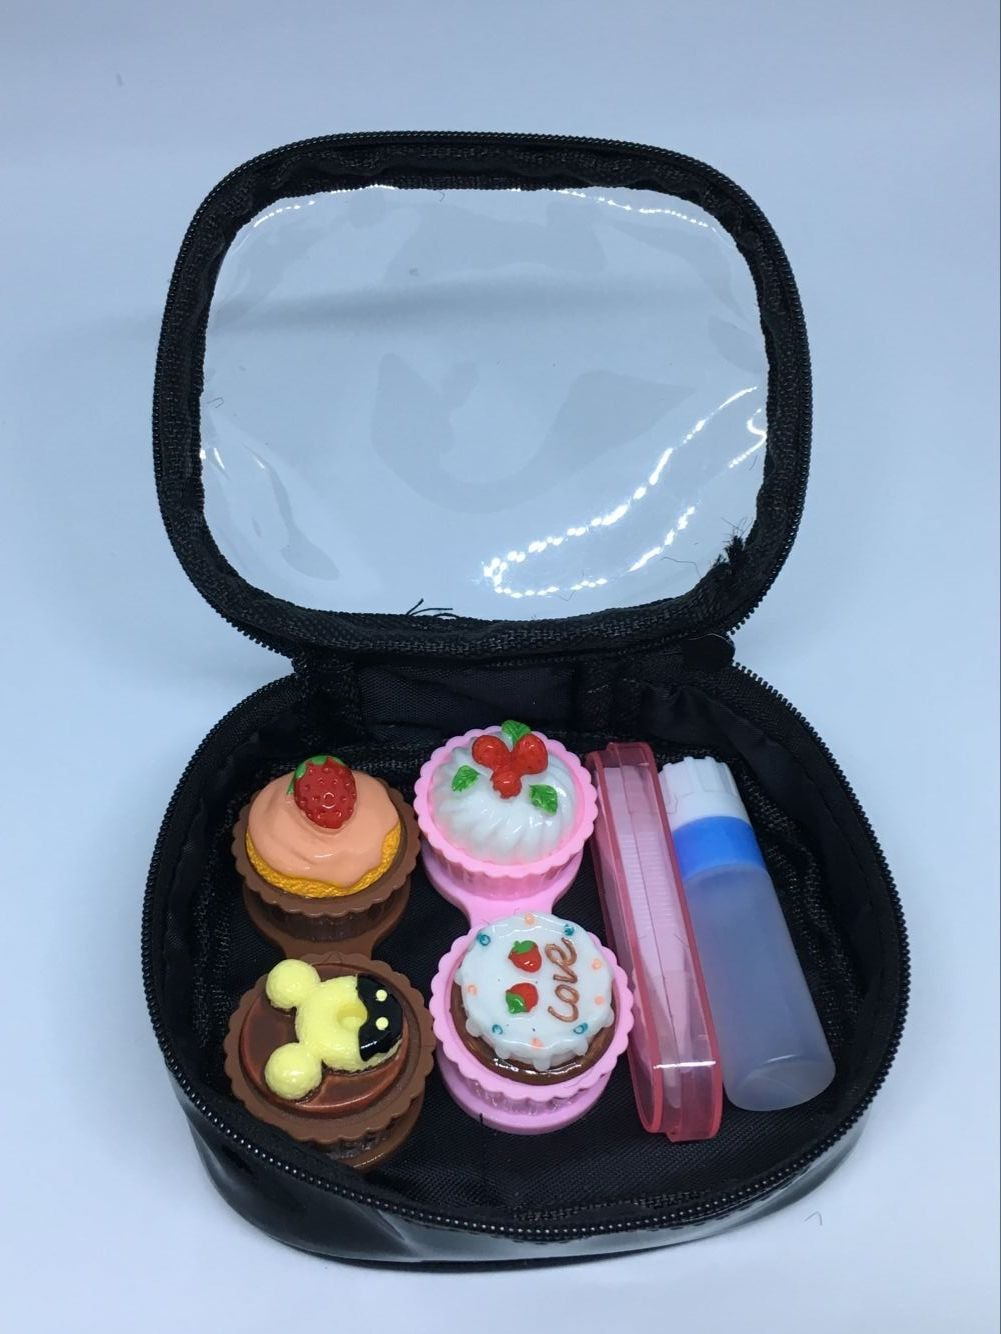 TGBACK Cute Kate Design Contact Lens Case Travel Kit Mirror +bottle + tweezers Container Holder